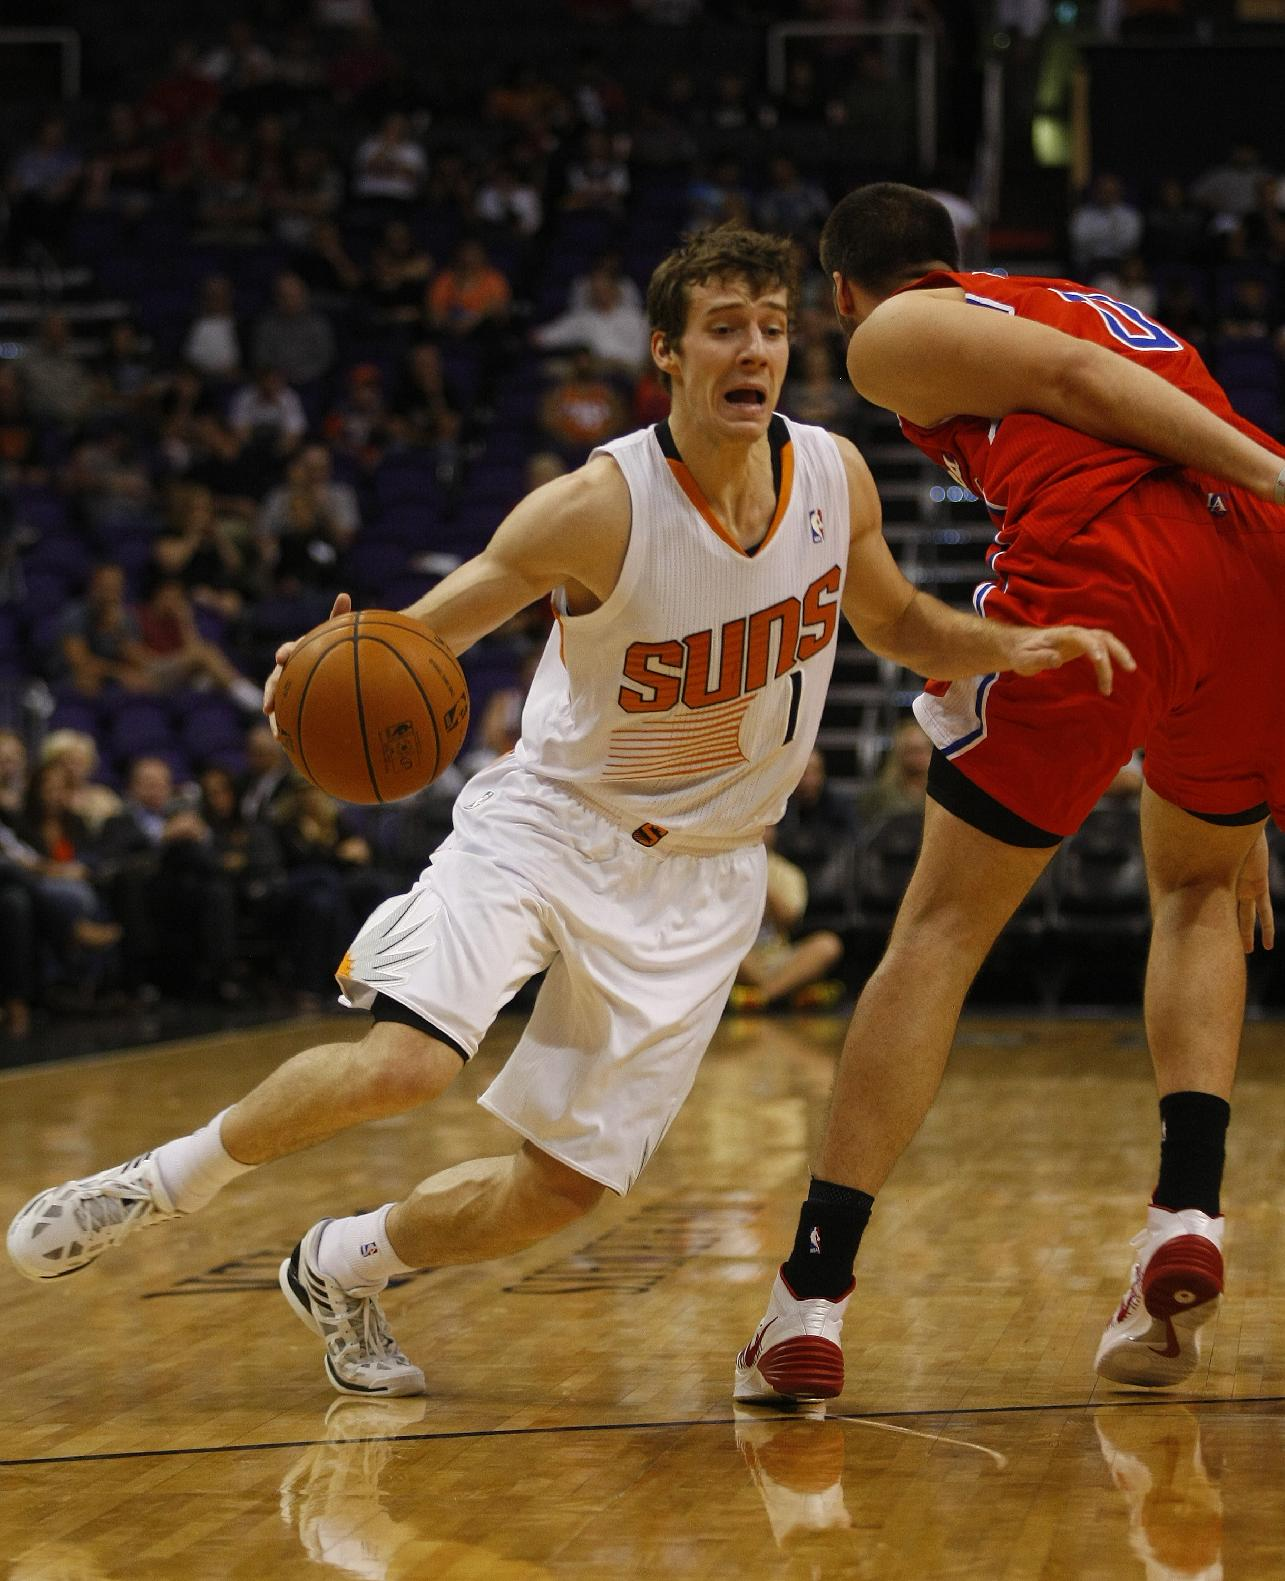 Phoenix Suns point guard Goran Dragic (1) drives past Los Angeles Clippers center Byron Mullens (0) in the third quarter during an NBA preseason basketball game on Tuesday, Oct. 15, 2013, in Phoenix